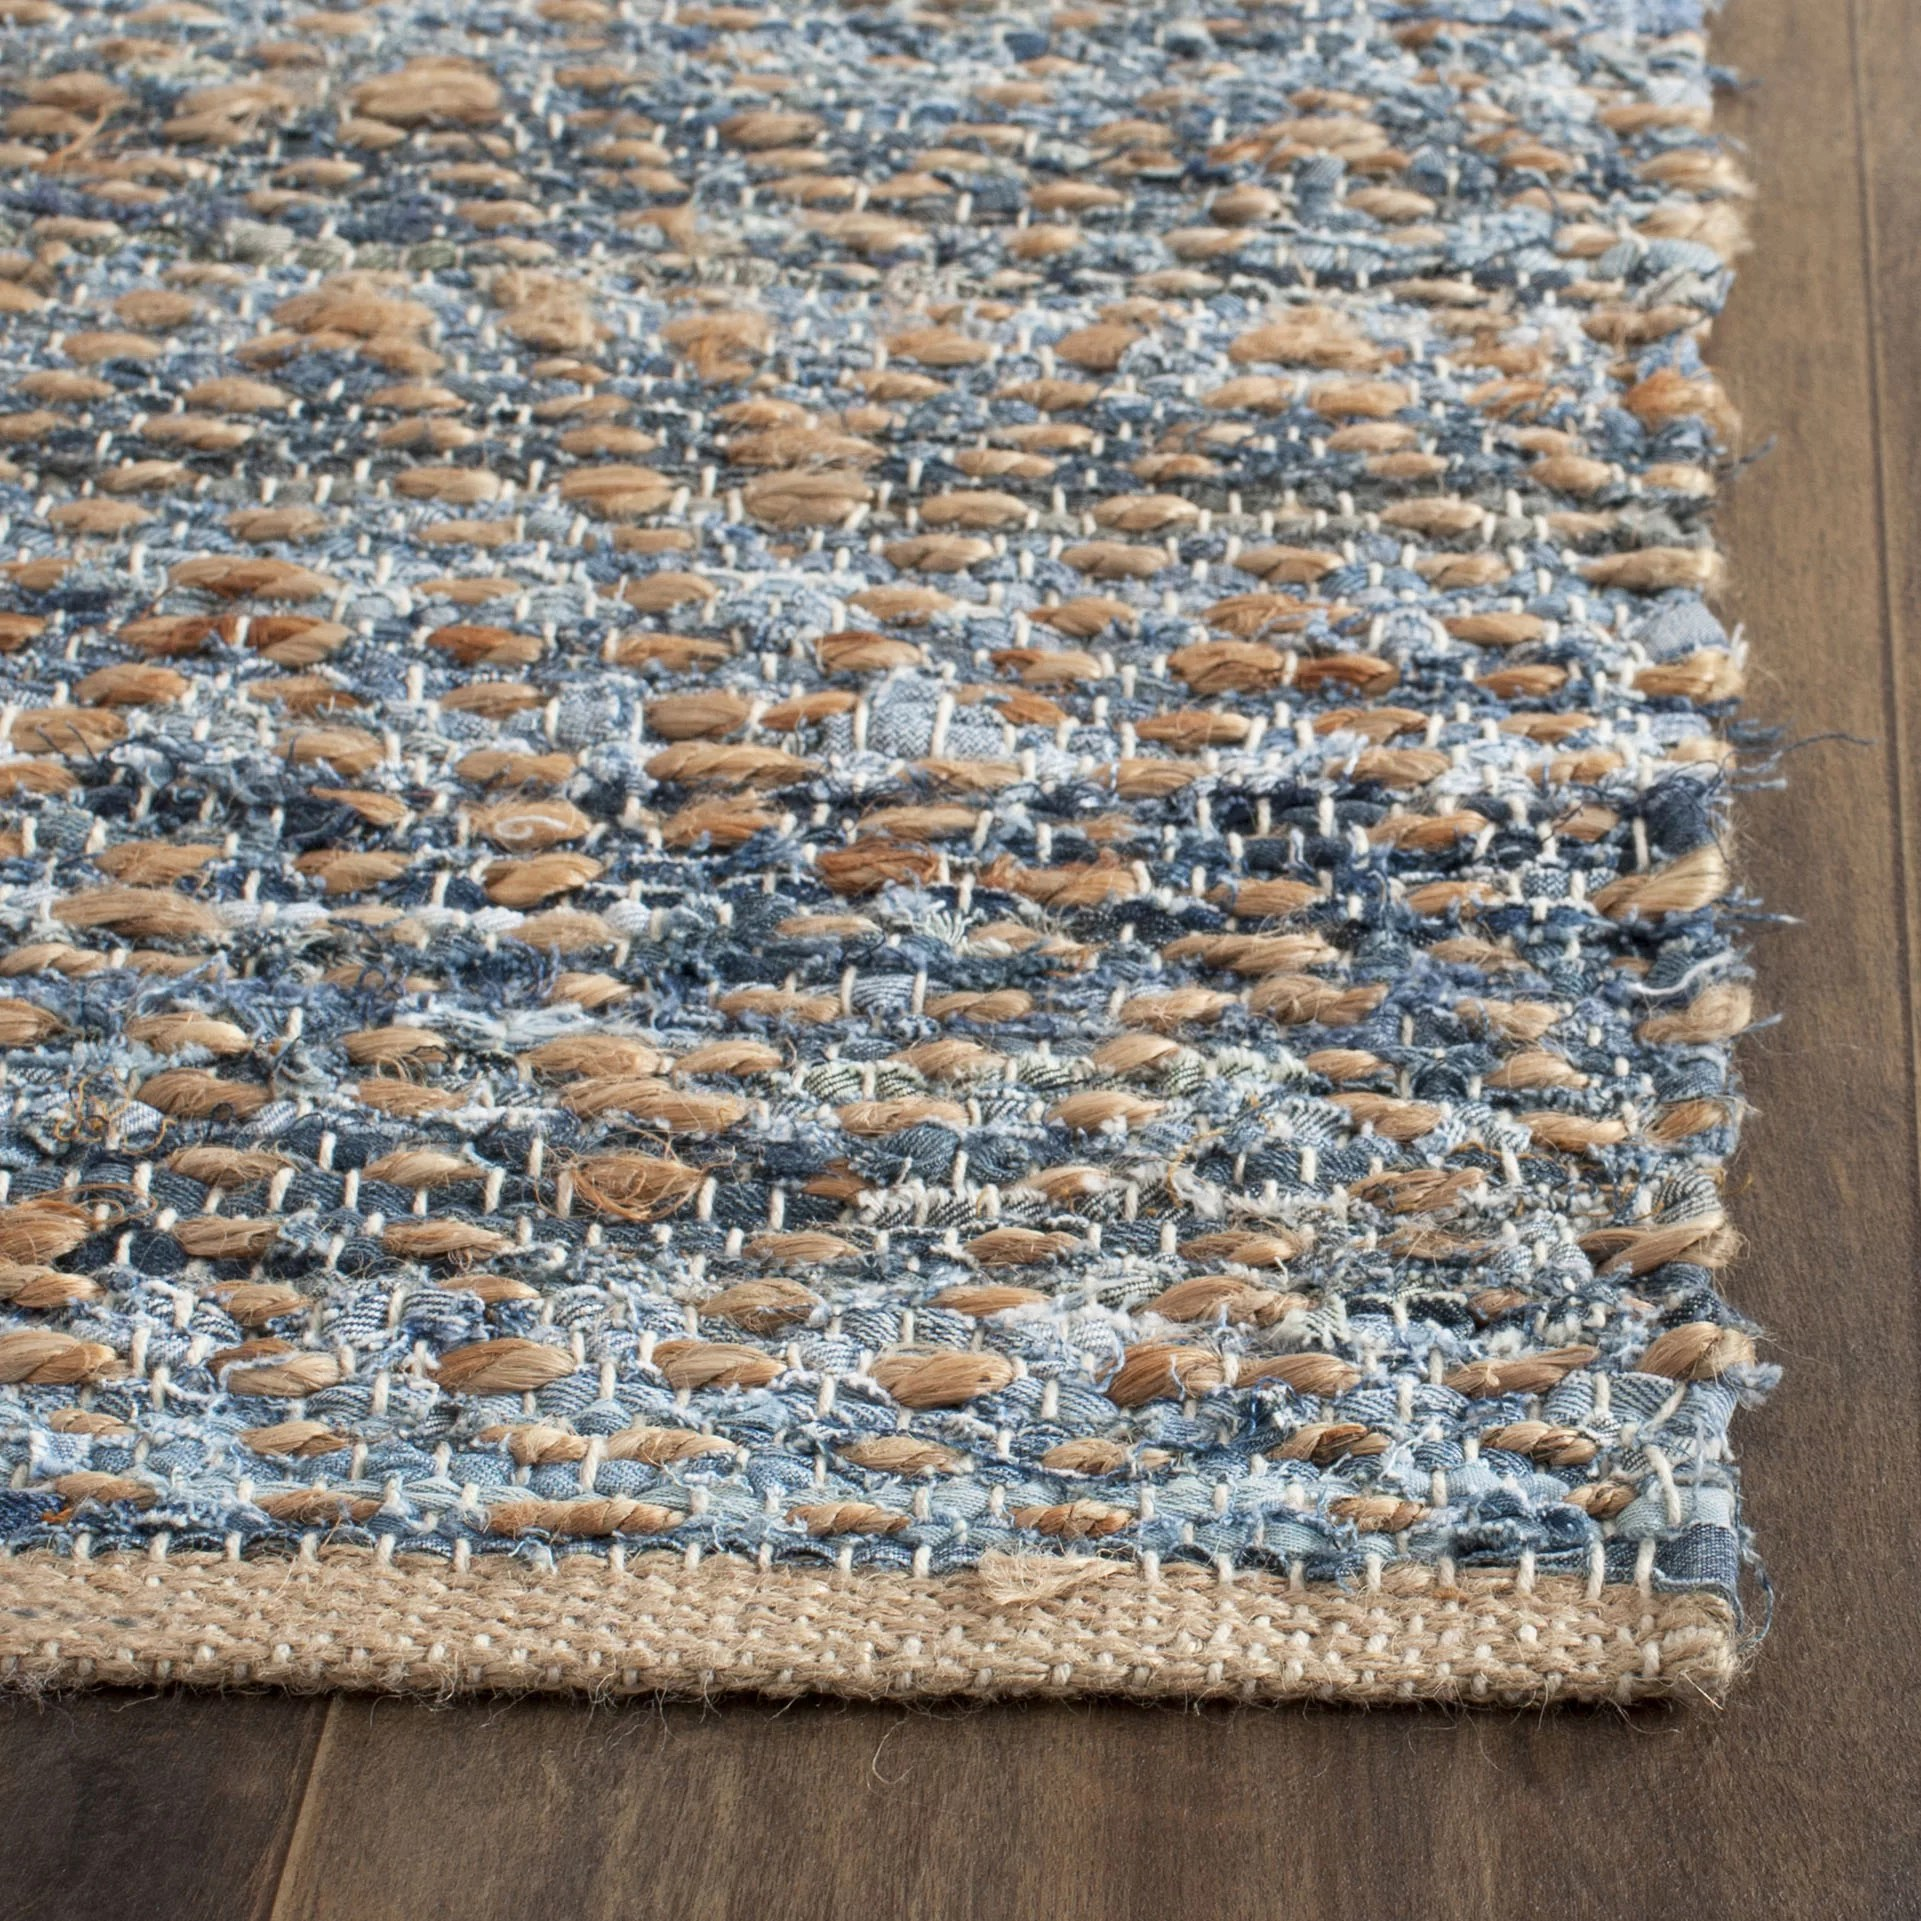 chicken kitchen rugs remodeling honolulu breakwater bay cromwell hand-woven natural/blue area rug ...